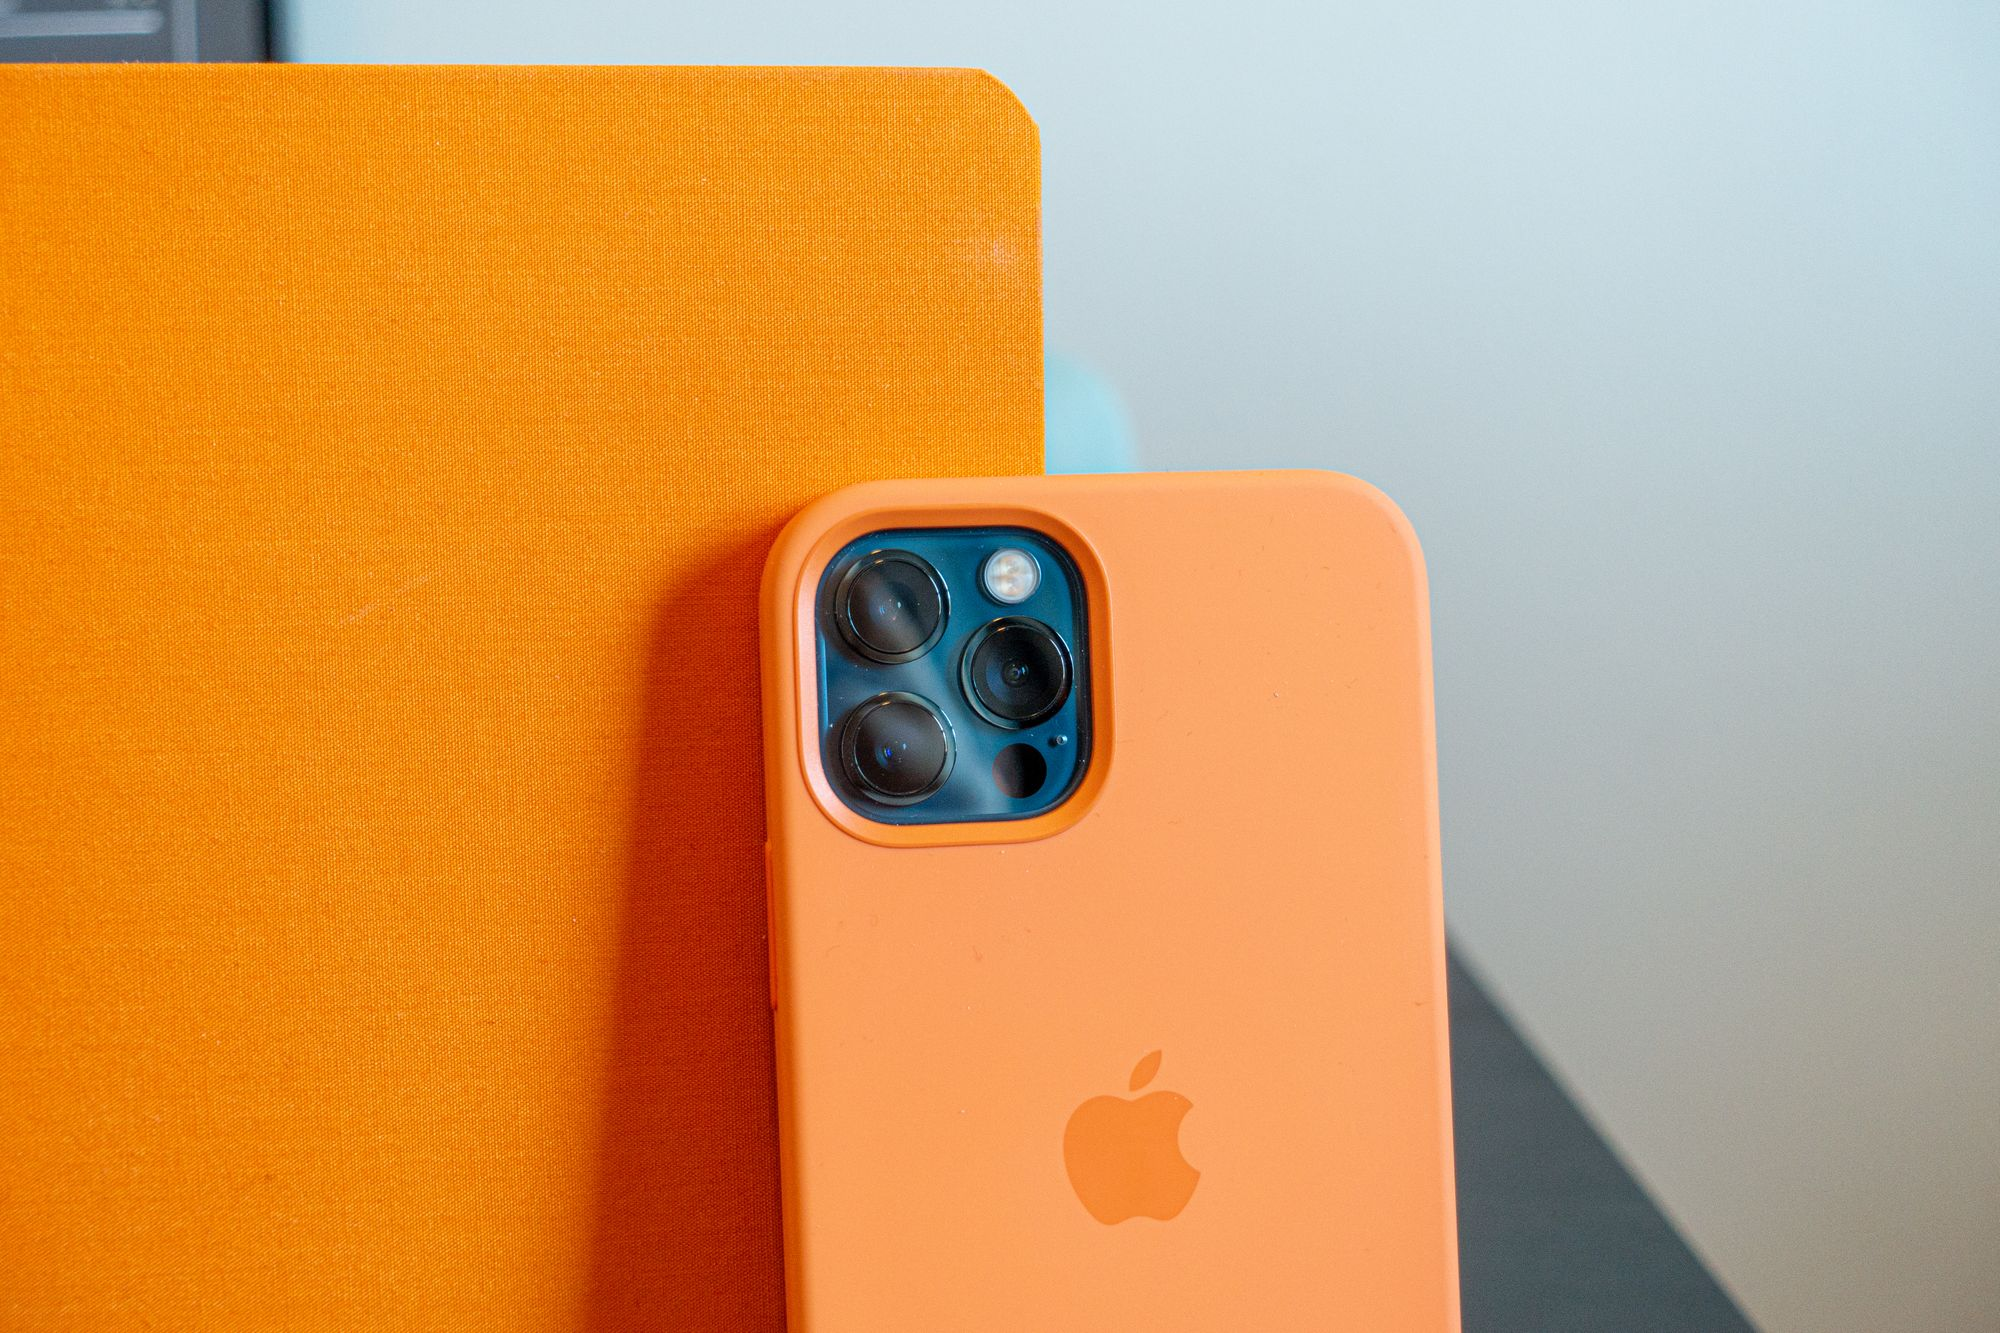 The Kunquat silicon case looks awesome with the blue iPhone